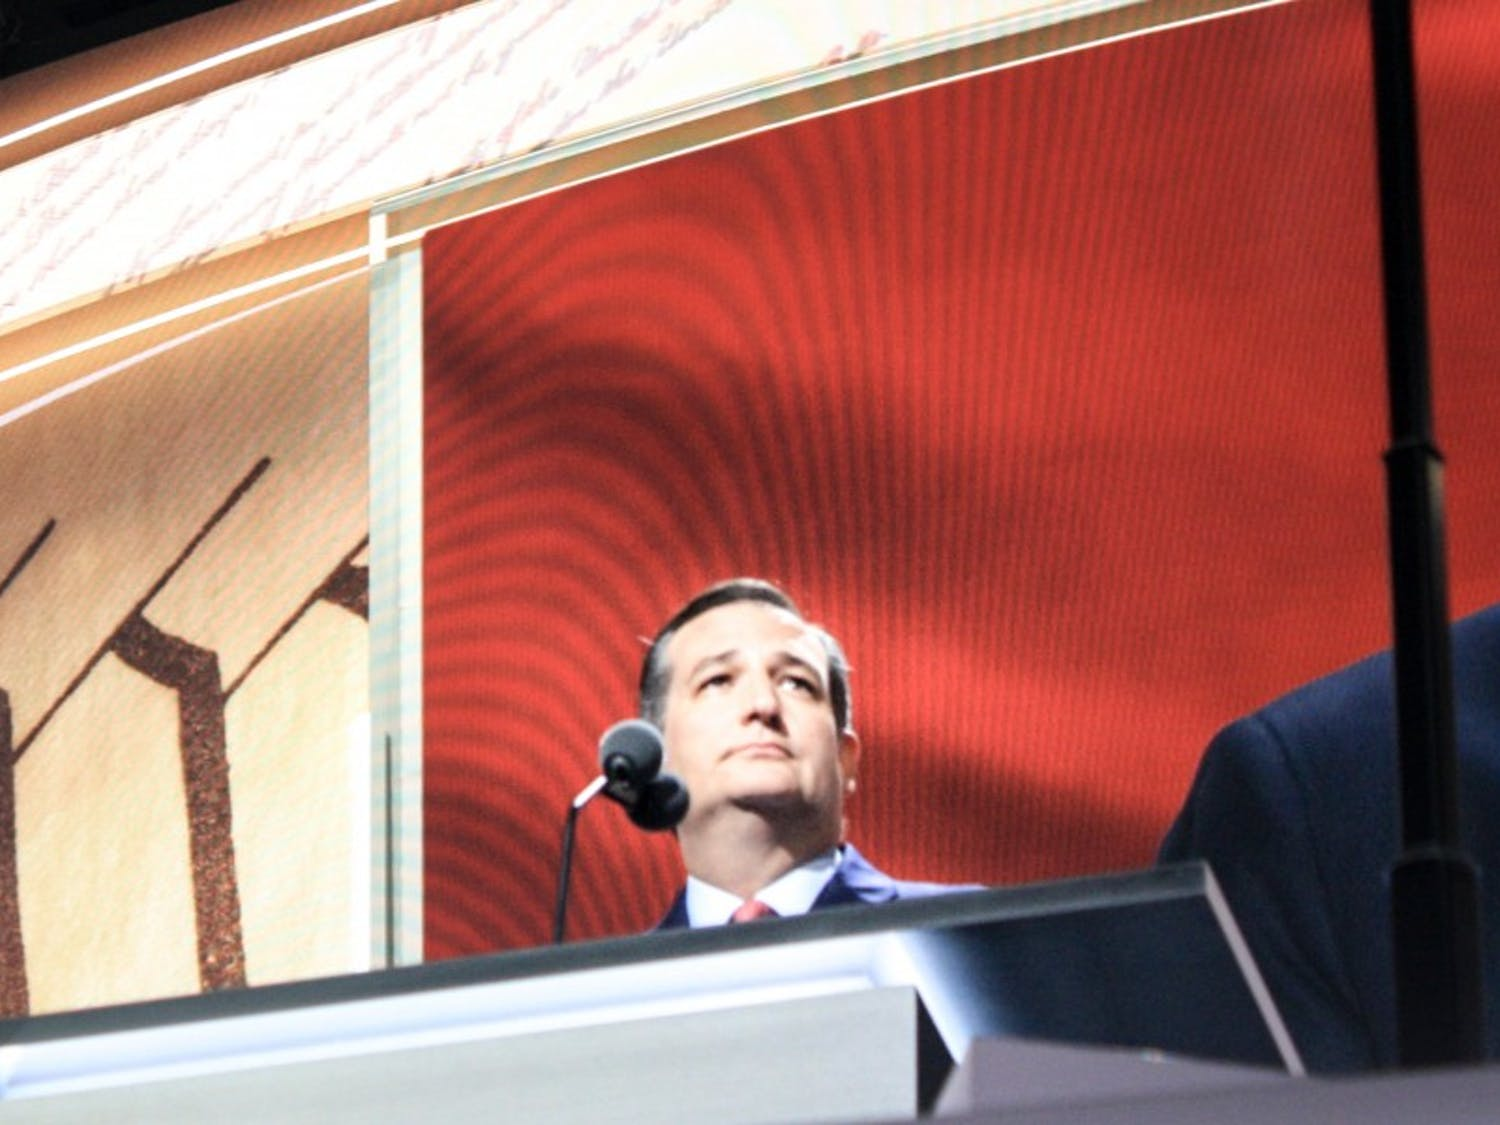 U.S. Sen. Ted Cruz, R-Texas, was booed off stage after his convention speech for not endorsing Donald Trump.